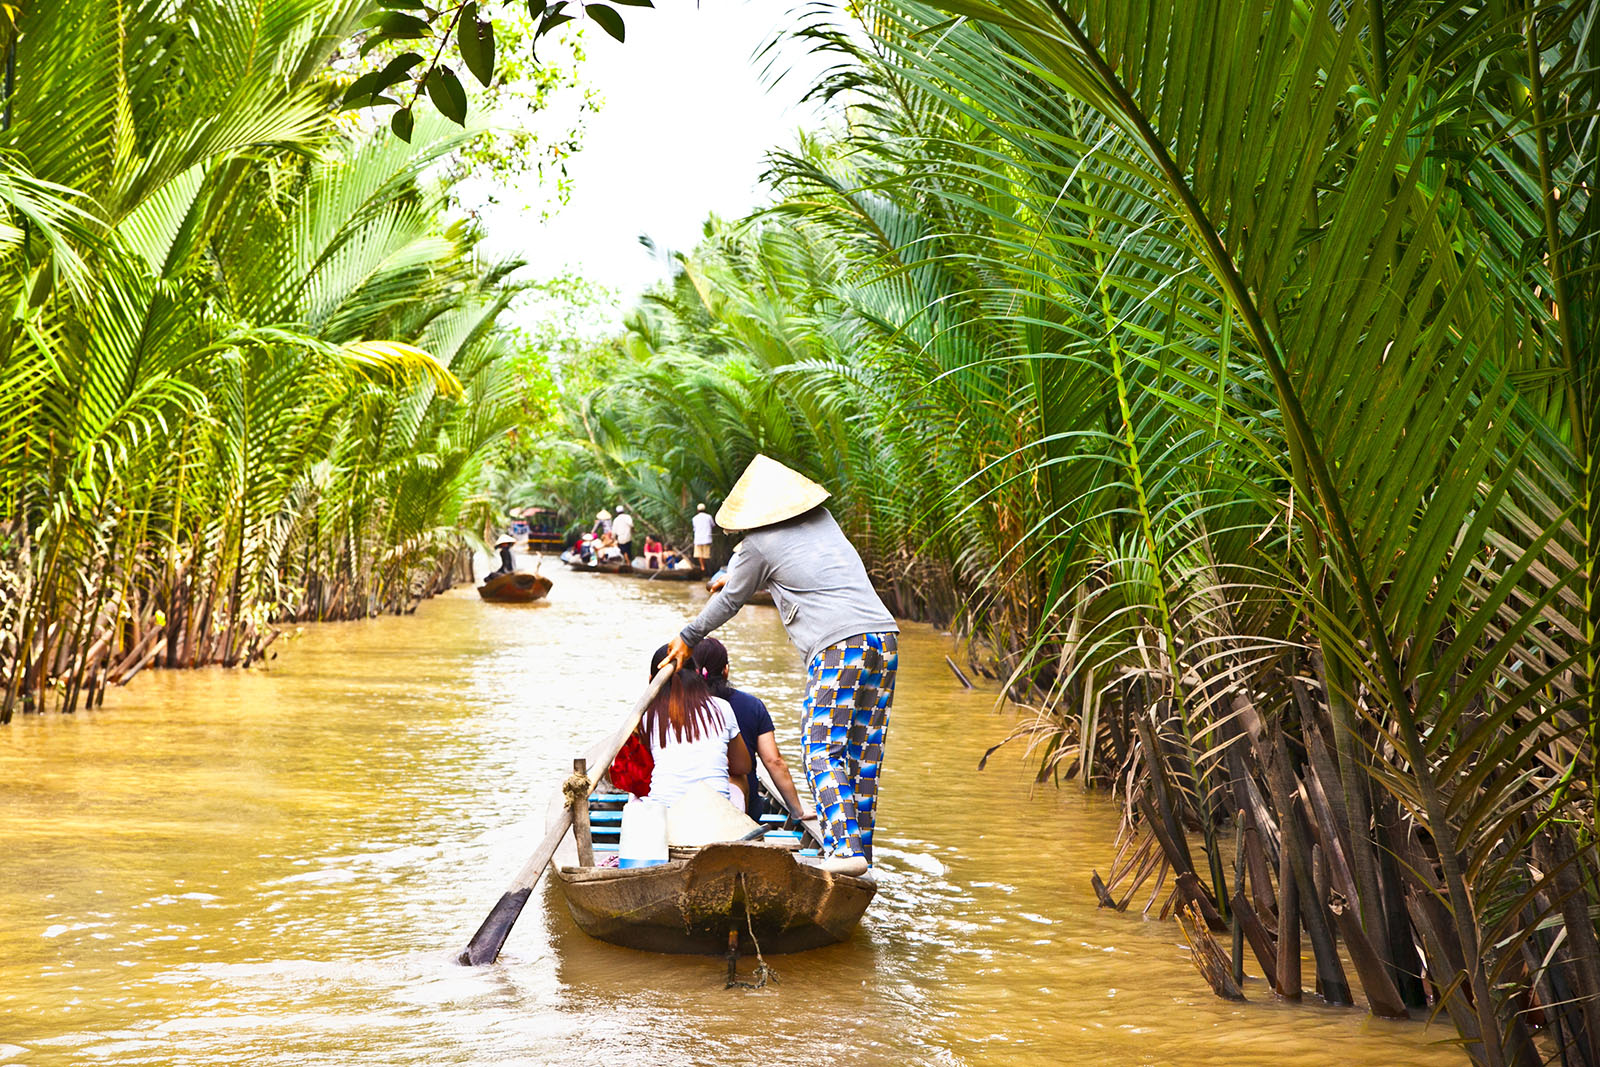 Group Tour: Three Days Mekong Delta Trip